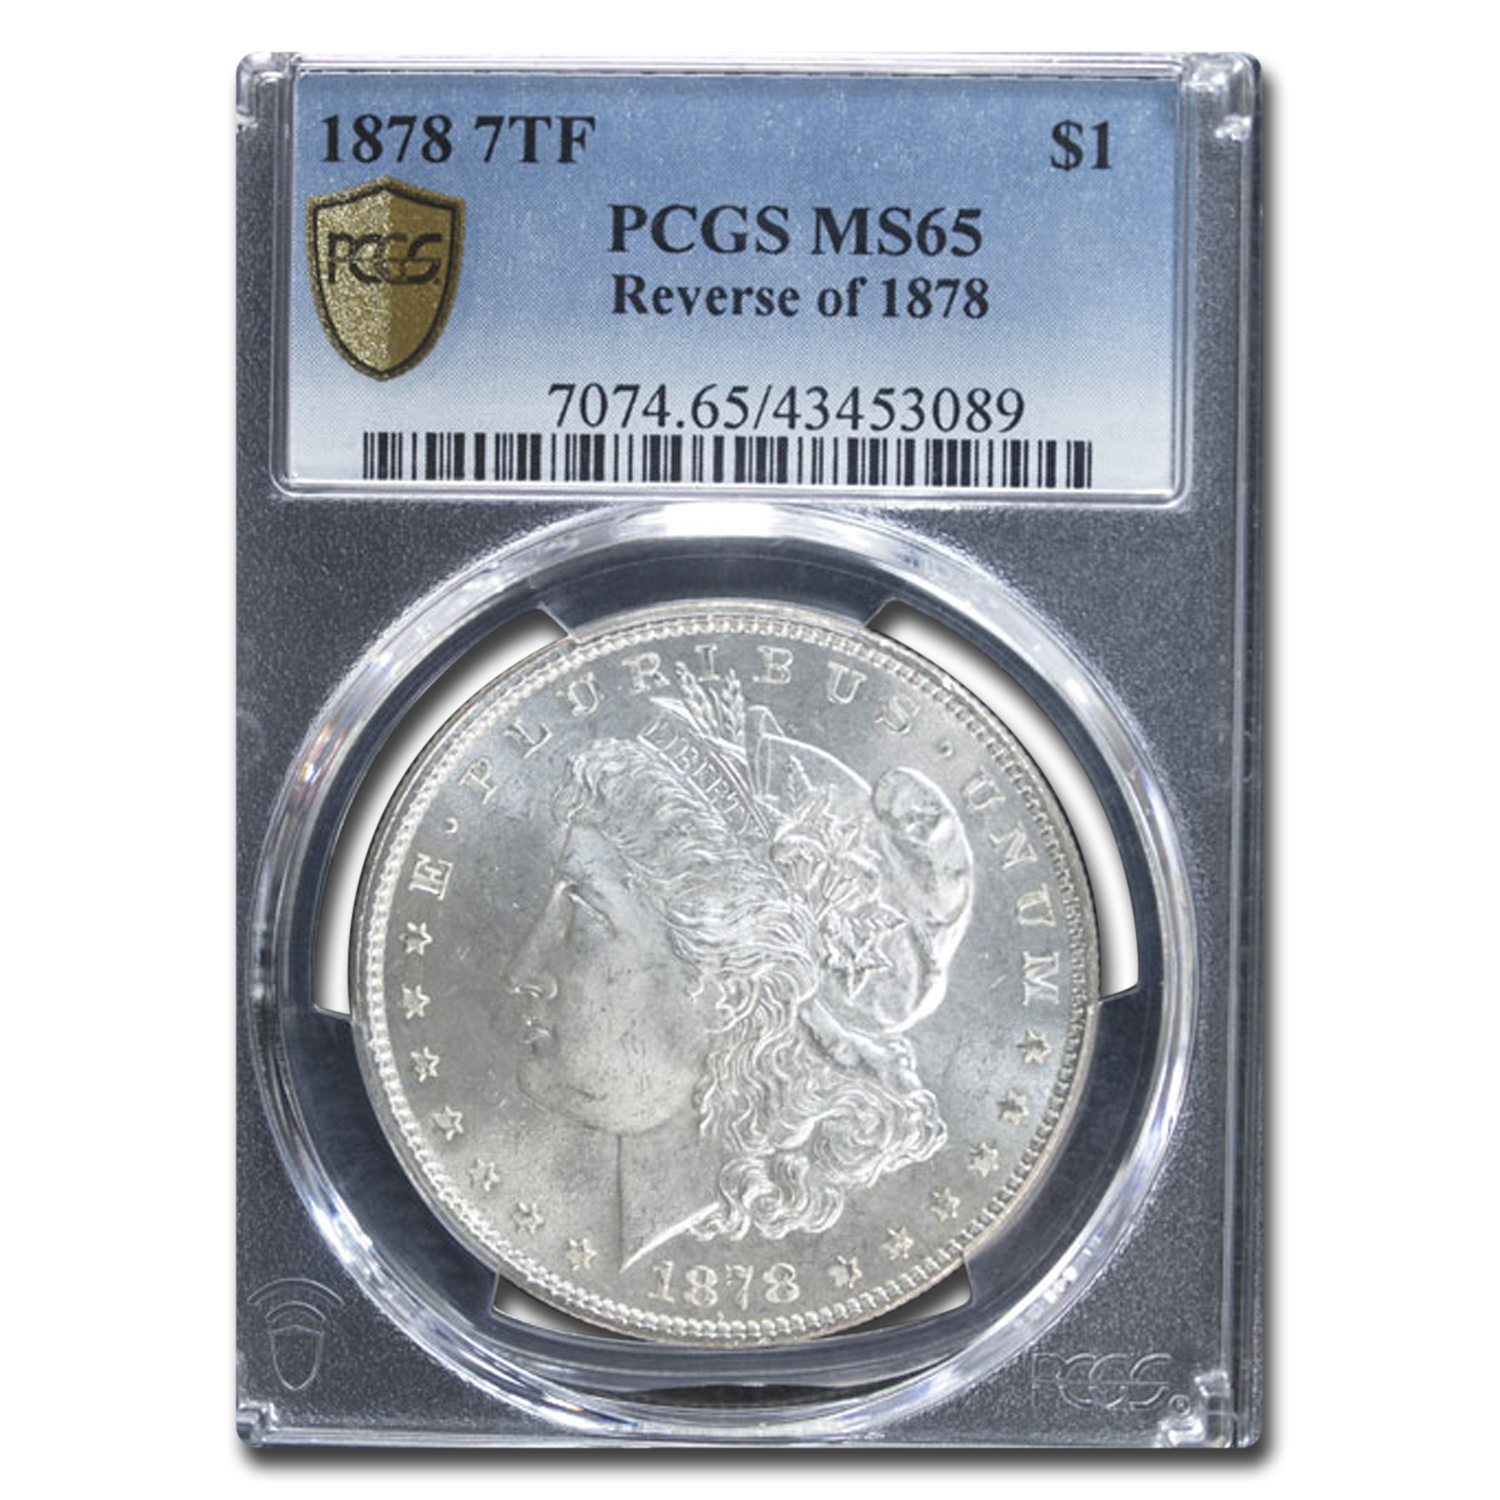 1878 Morgan Dollar - 7 Tailfeathers Rev of 1878 MS-65 PCGS